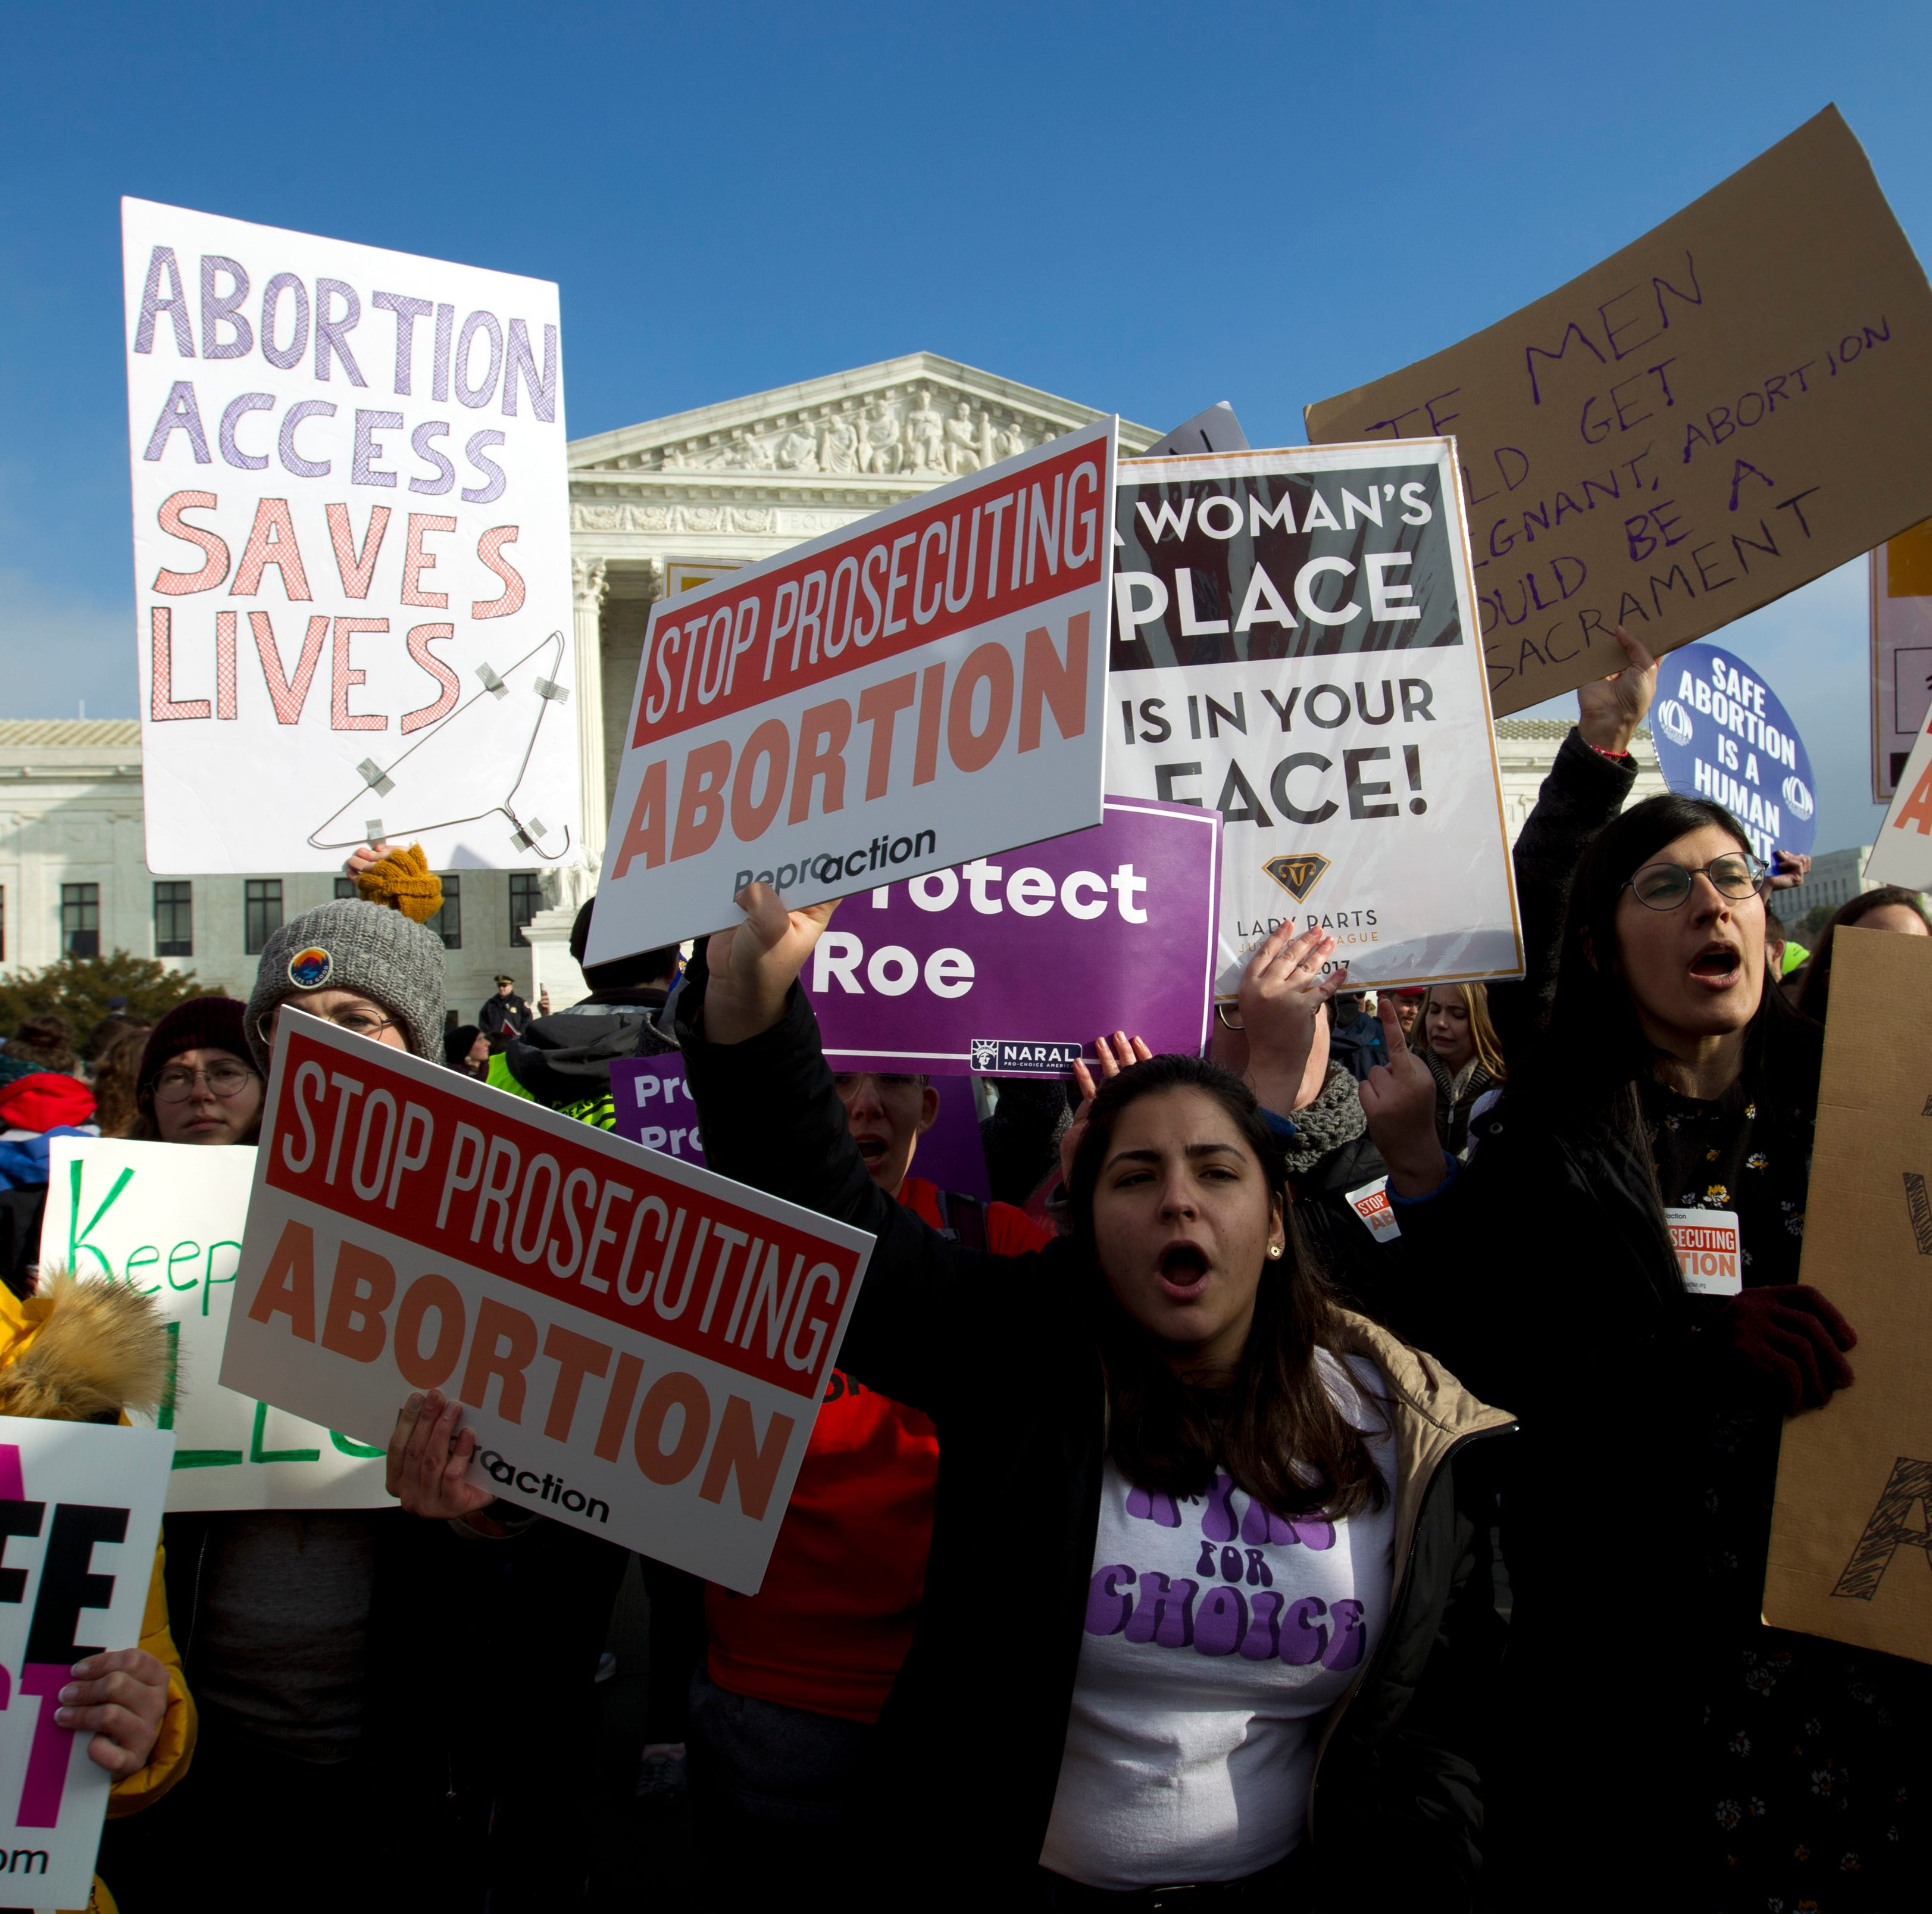 How Democrats can win the abortion war: Talk about Roe's restrictions as well as rights